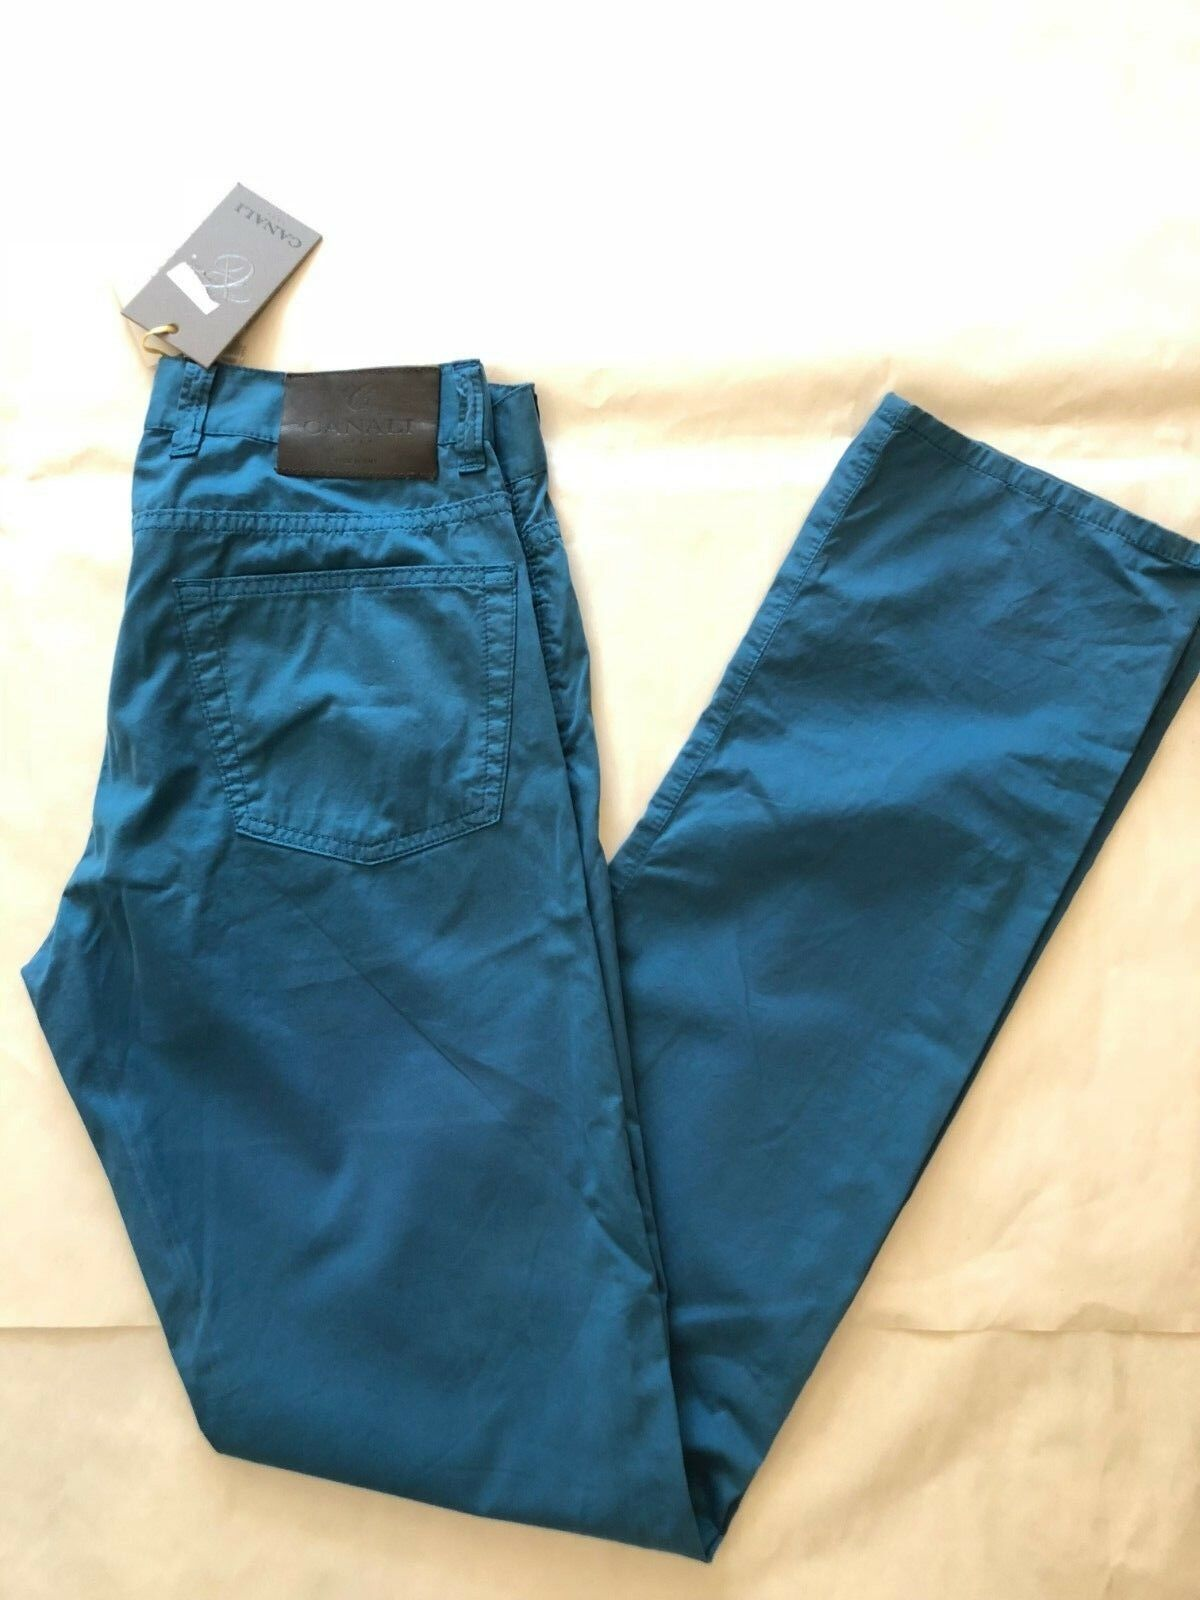 NWT  CANALI Men's Cotton Light Weight Casual Pants bluee Sz 32 X 34